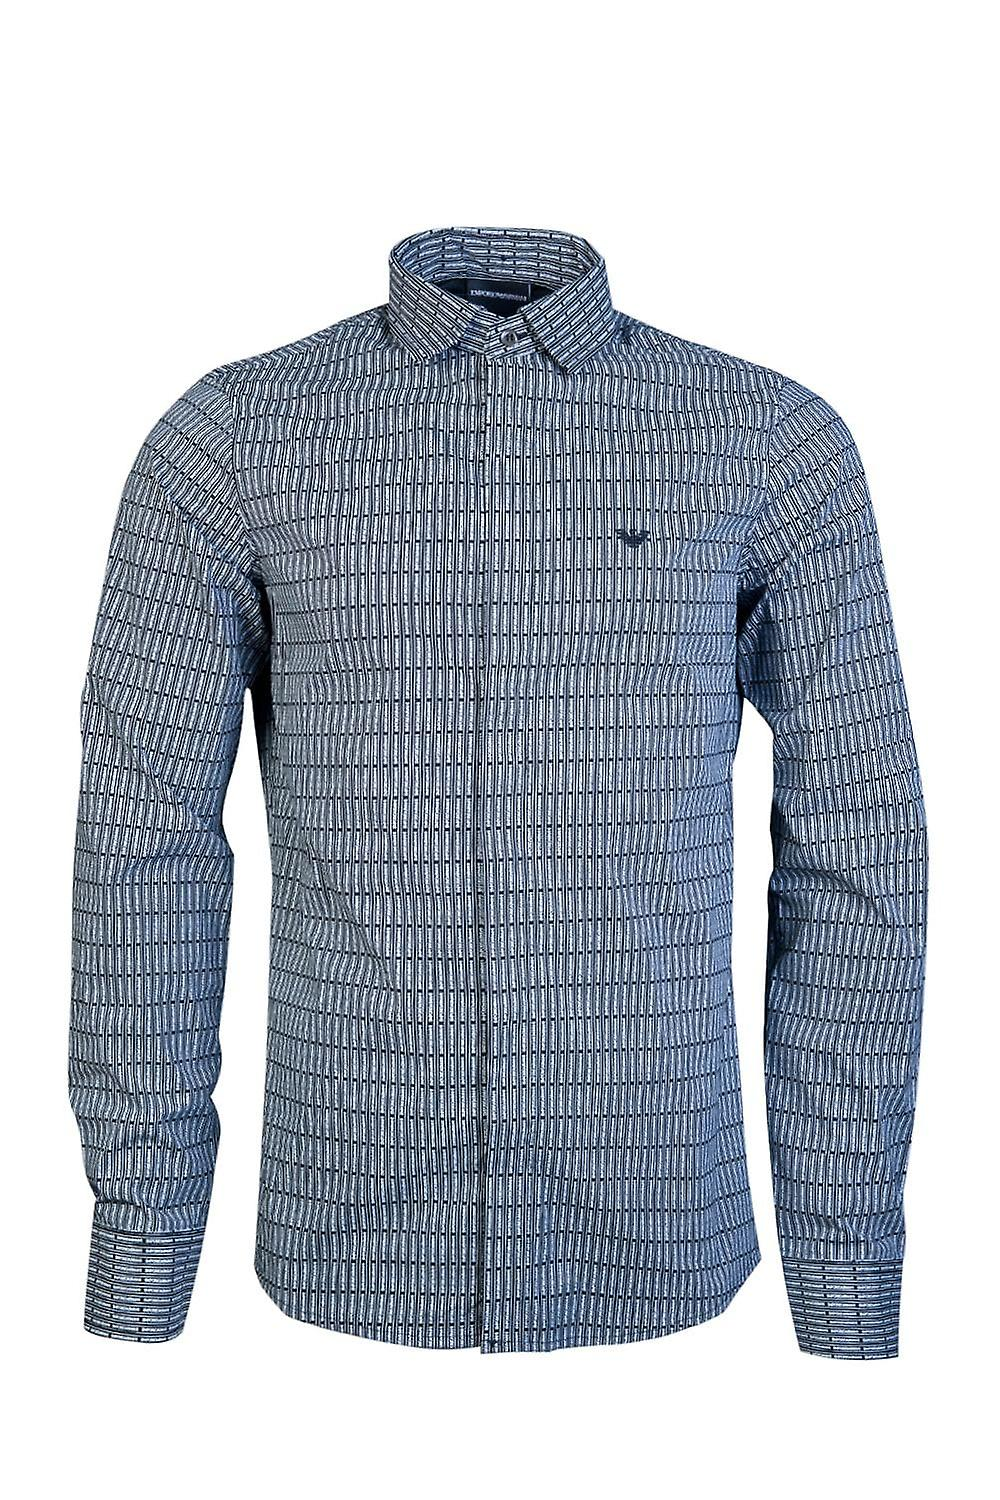 Emporio Armani Business-Regular Collar Shirt 3G1CL3 1NHUZ